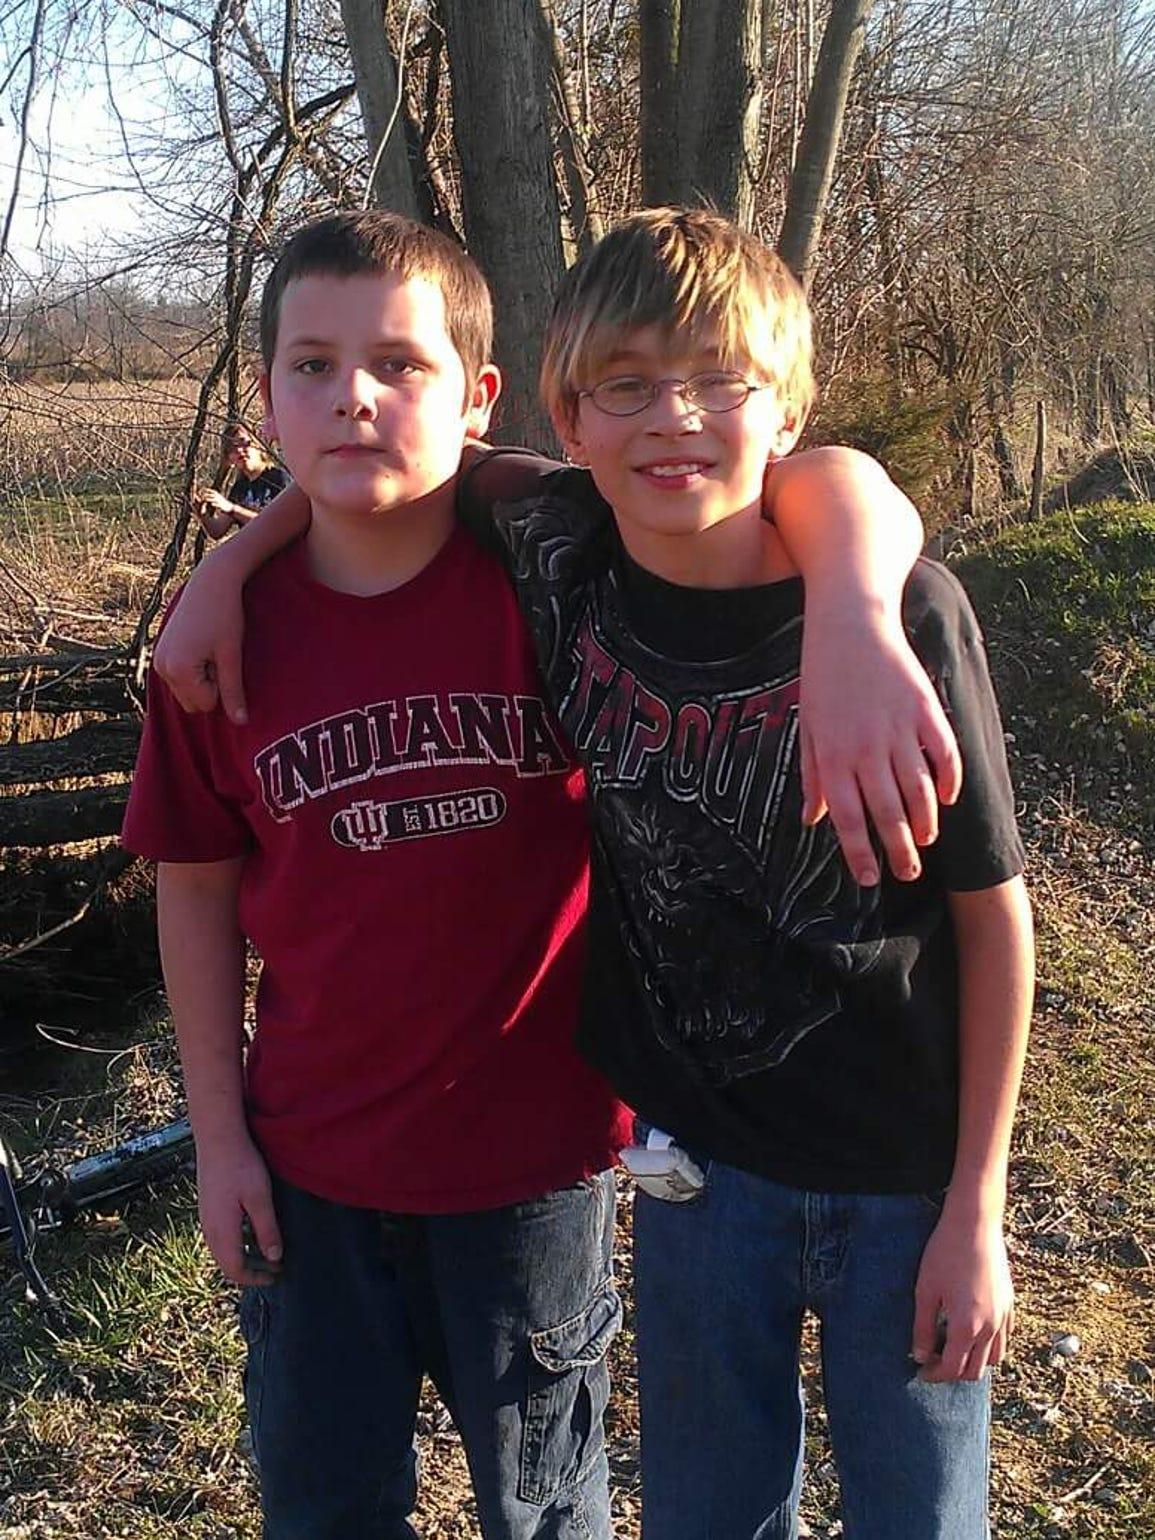 Robert's friend, Cordell, was with him when the accident